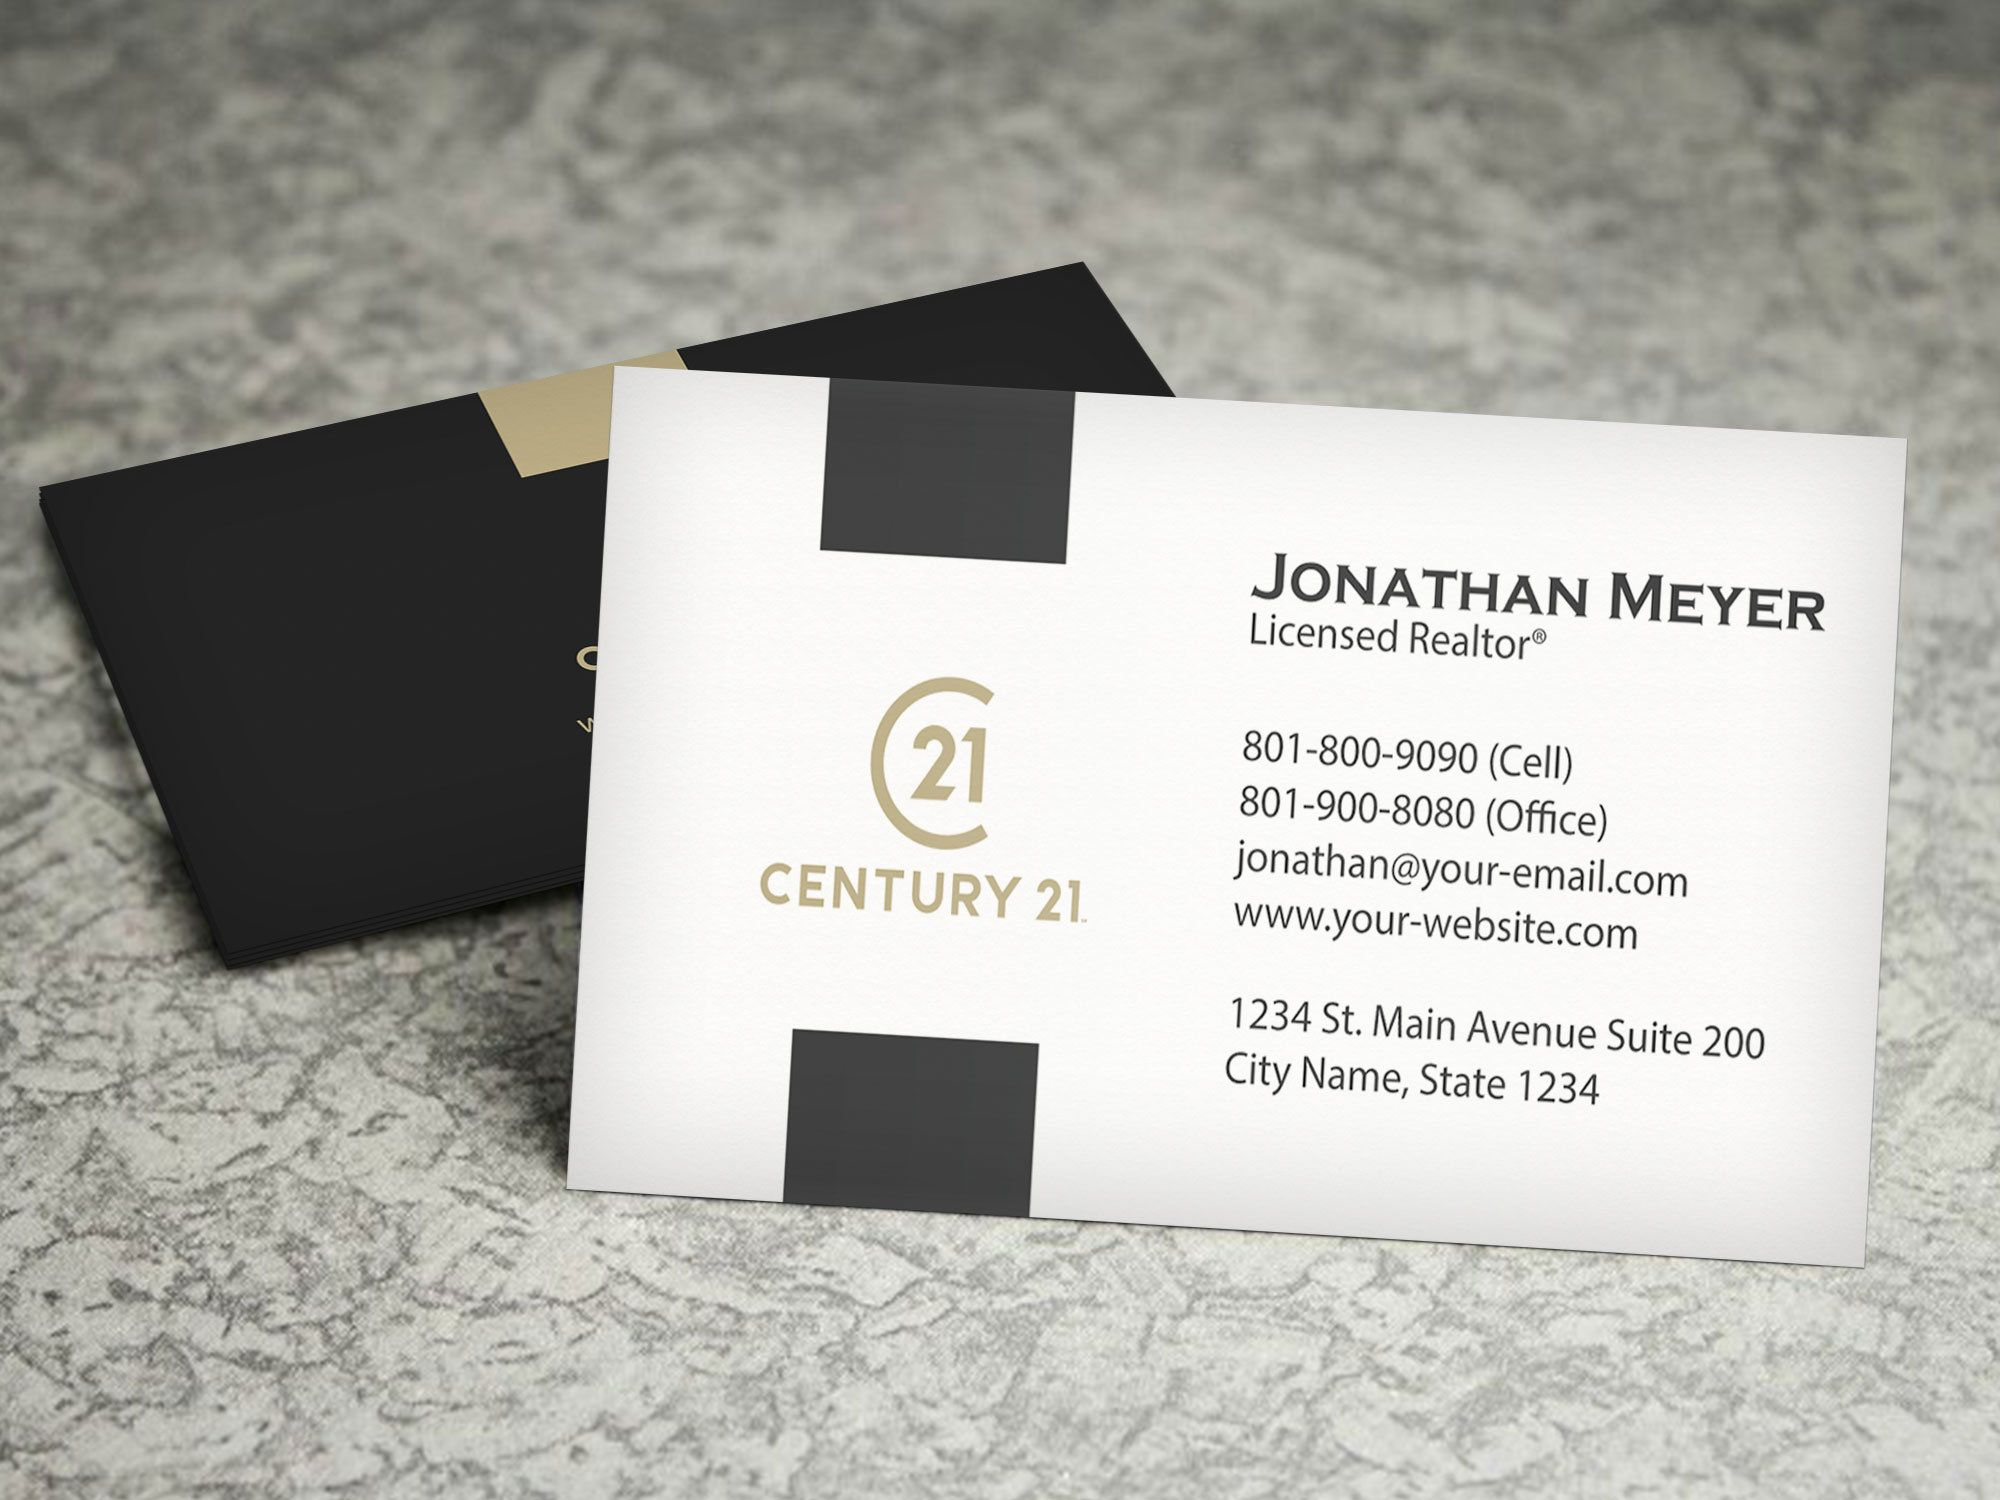 Century 21 Business Card Real Estate Business Card Design Etsy Realtor Business Cards Fun Business Card Design Business Card Design Real estate business card template